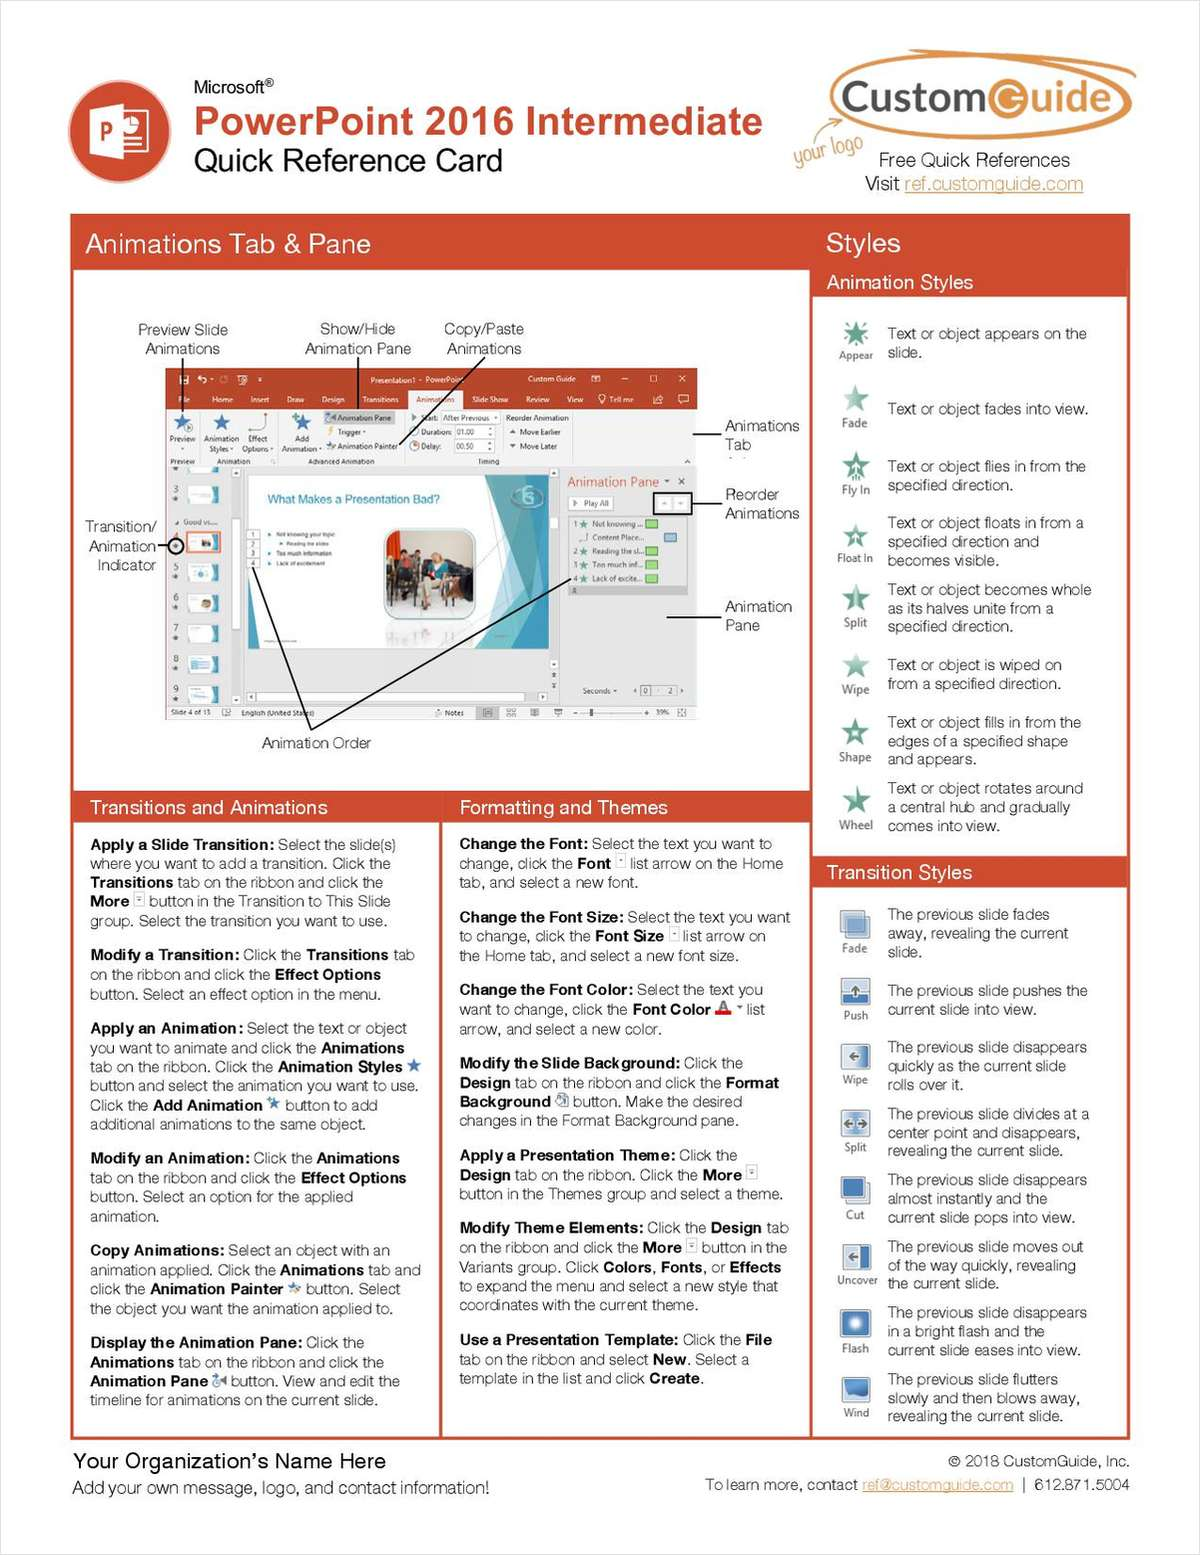 Microsoft PowerPoint 2016 Intermediate - Quick Reference Card